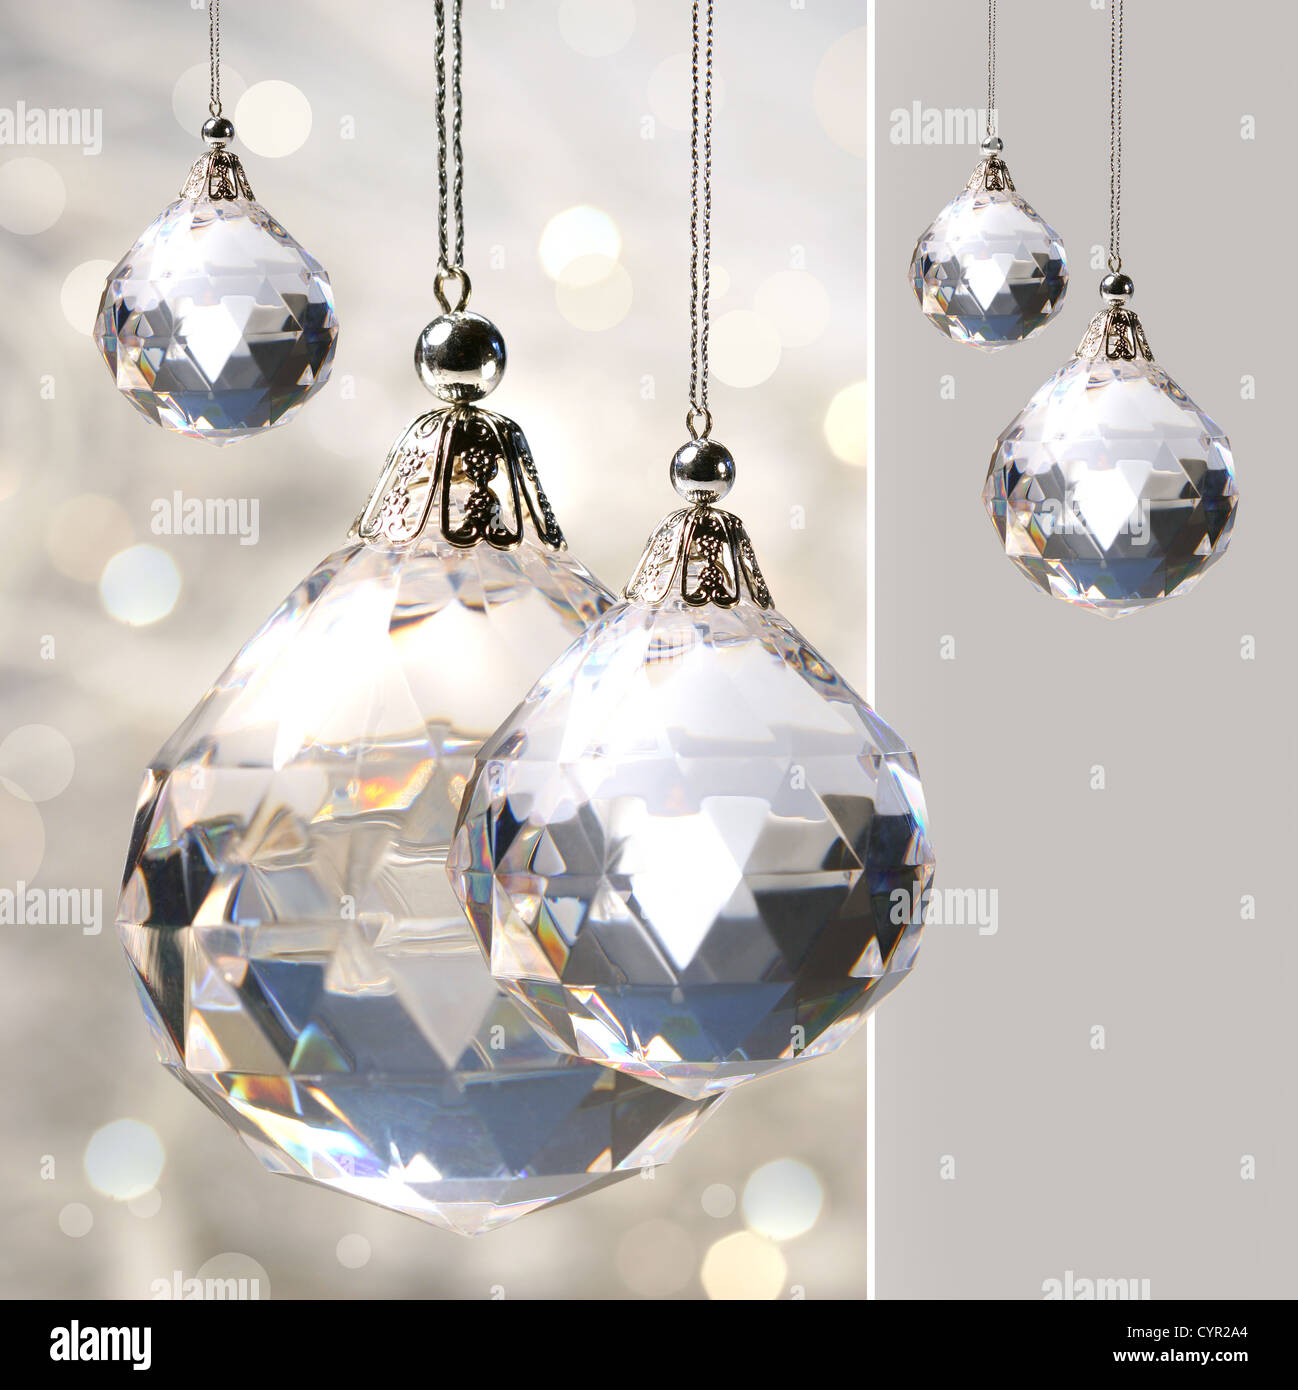 Crystal ornament hanging against shimmering background - Stock Image